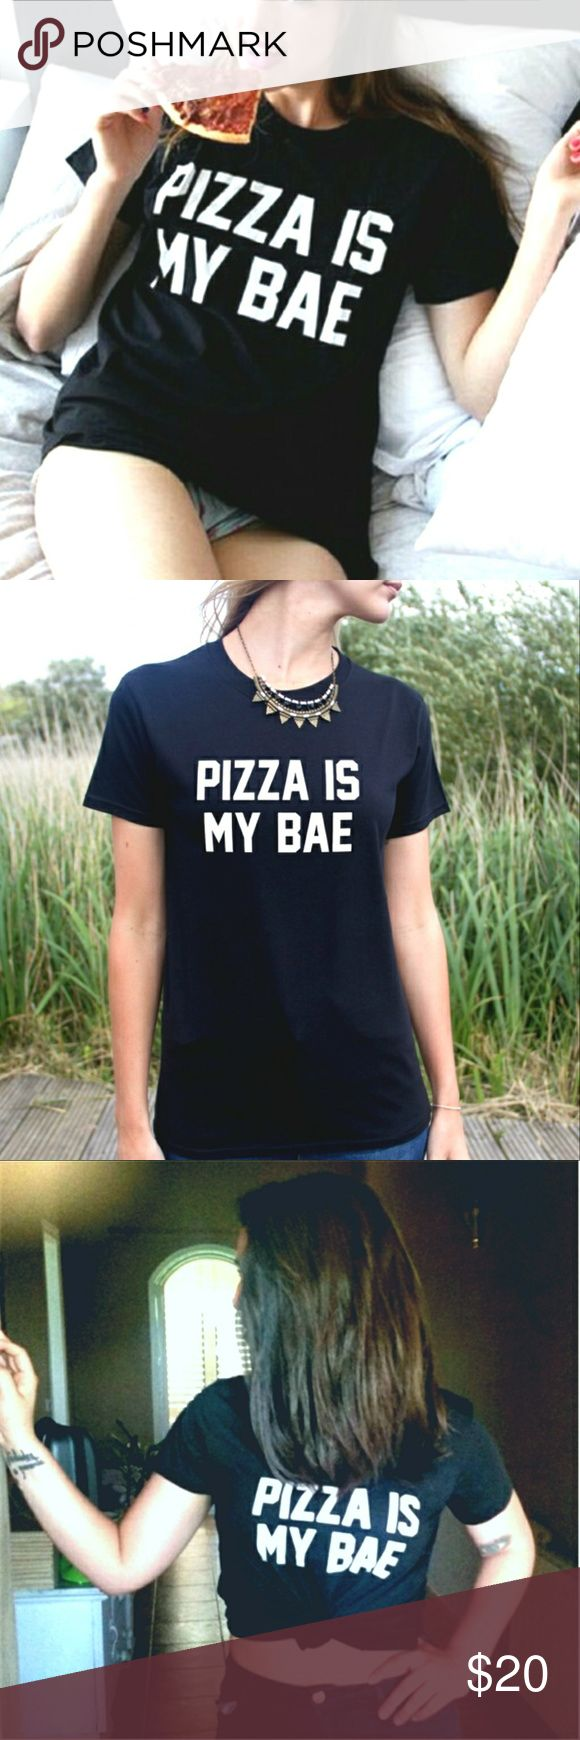 NEW Pizza is My Bae Graphic Tee. S,M,L,XL Fitting: Classic fit, true to size.   *Measurement in inches :    S   : Width = 17.25″, Length = 25.5″. Size 4-6    M  : Width = 19.25″ , Length = 26″. Size 8-10    L   : Width = 21.25″ , Length = 27″. Size 12-14    XL : Width = 23.25″, Length = 28″. Size 16-18  *Material: Heavy Cotton blend.  *Condition: Brand new in original packaging.  Comfy and versatile graphic tee. Made out of high quality heavy cotton blend.The perfect tee for everyday wear or…